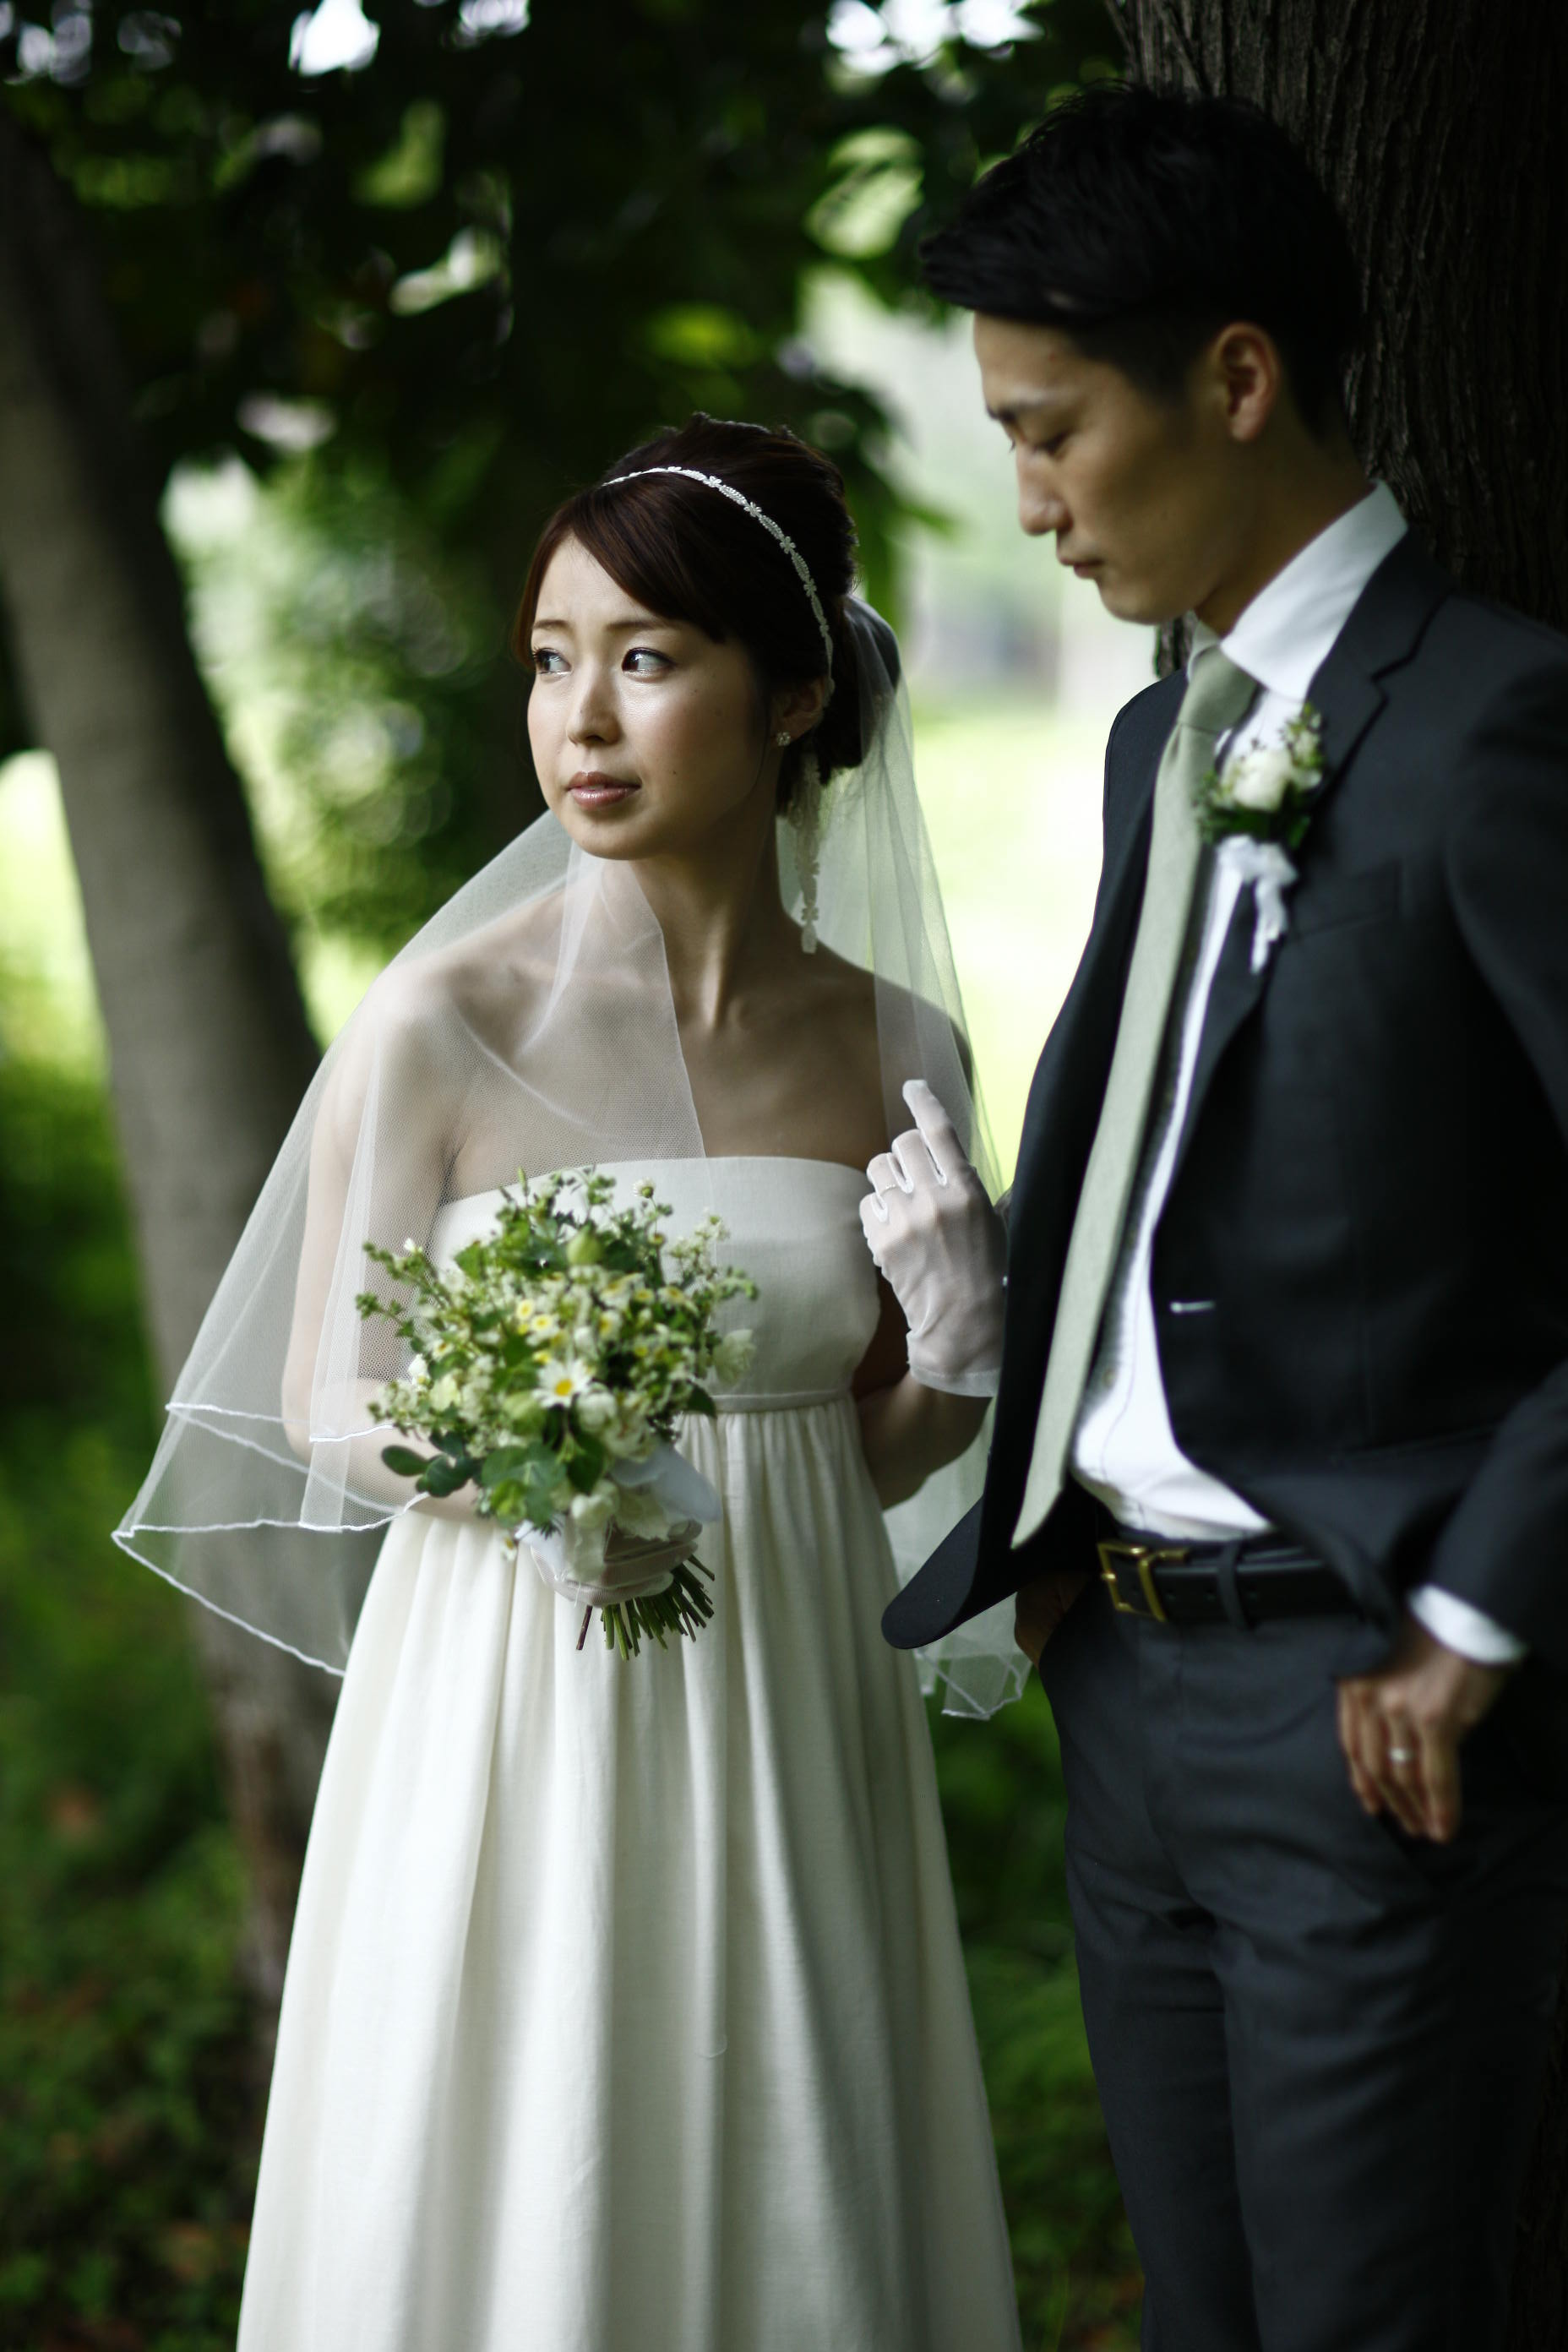 3(Weddingdress_Greys).JPG